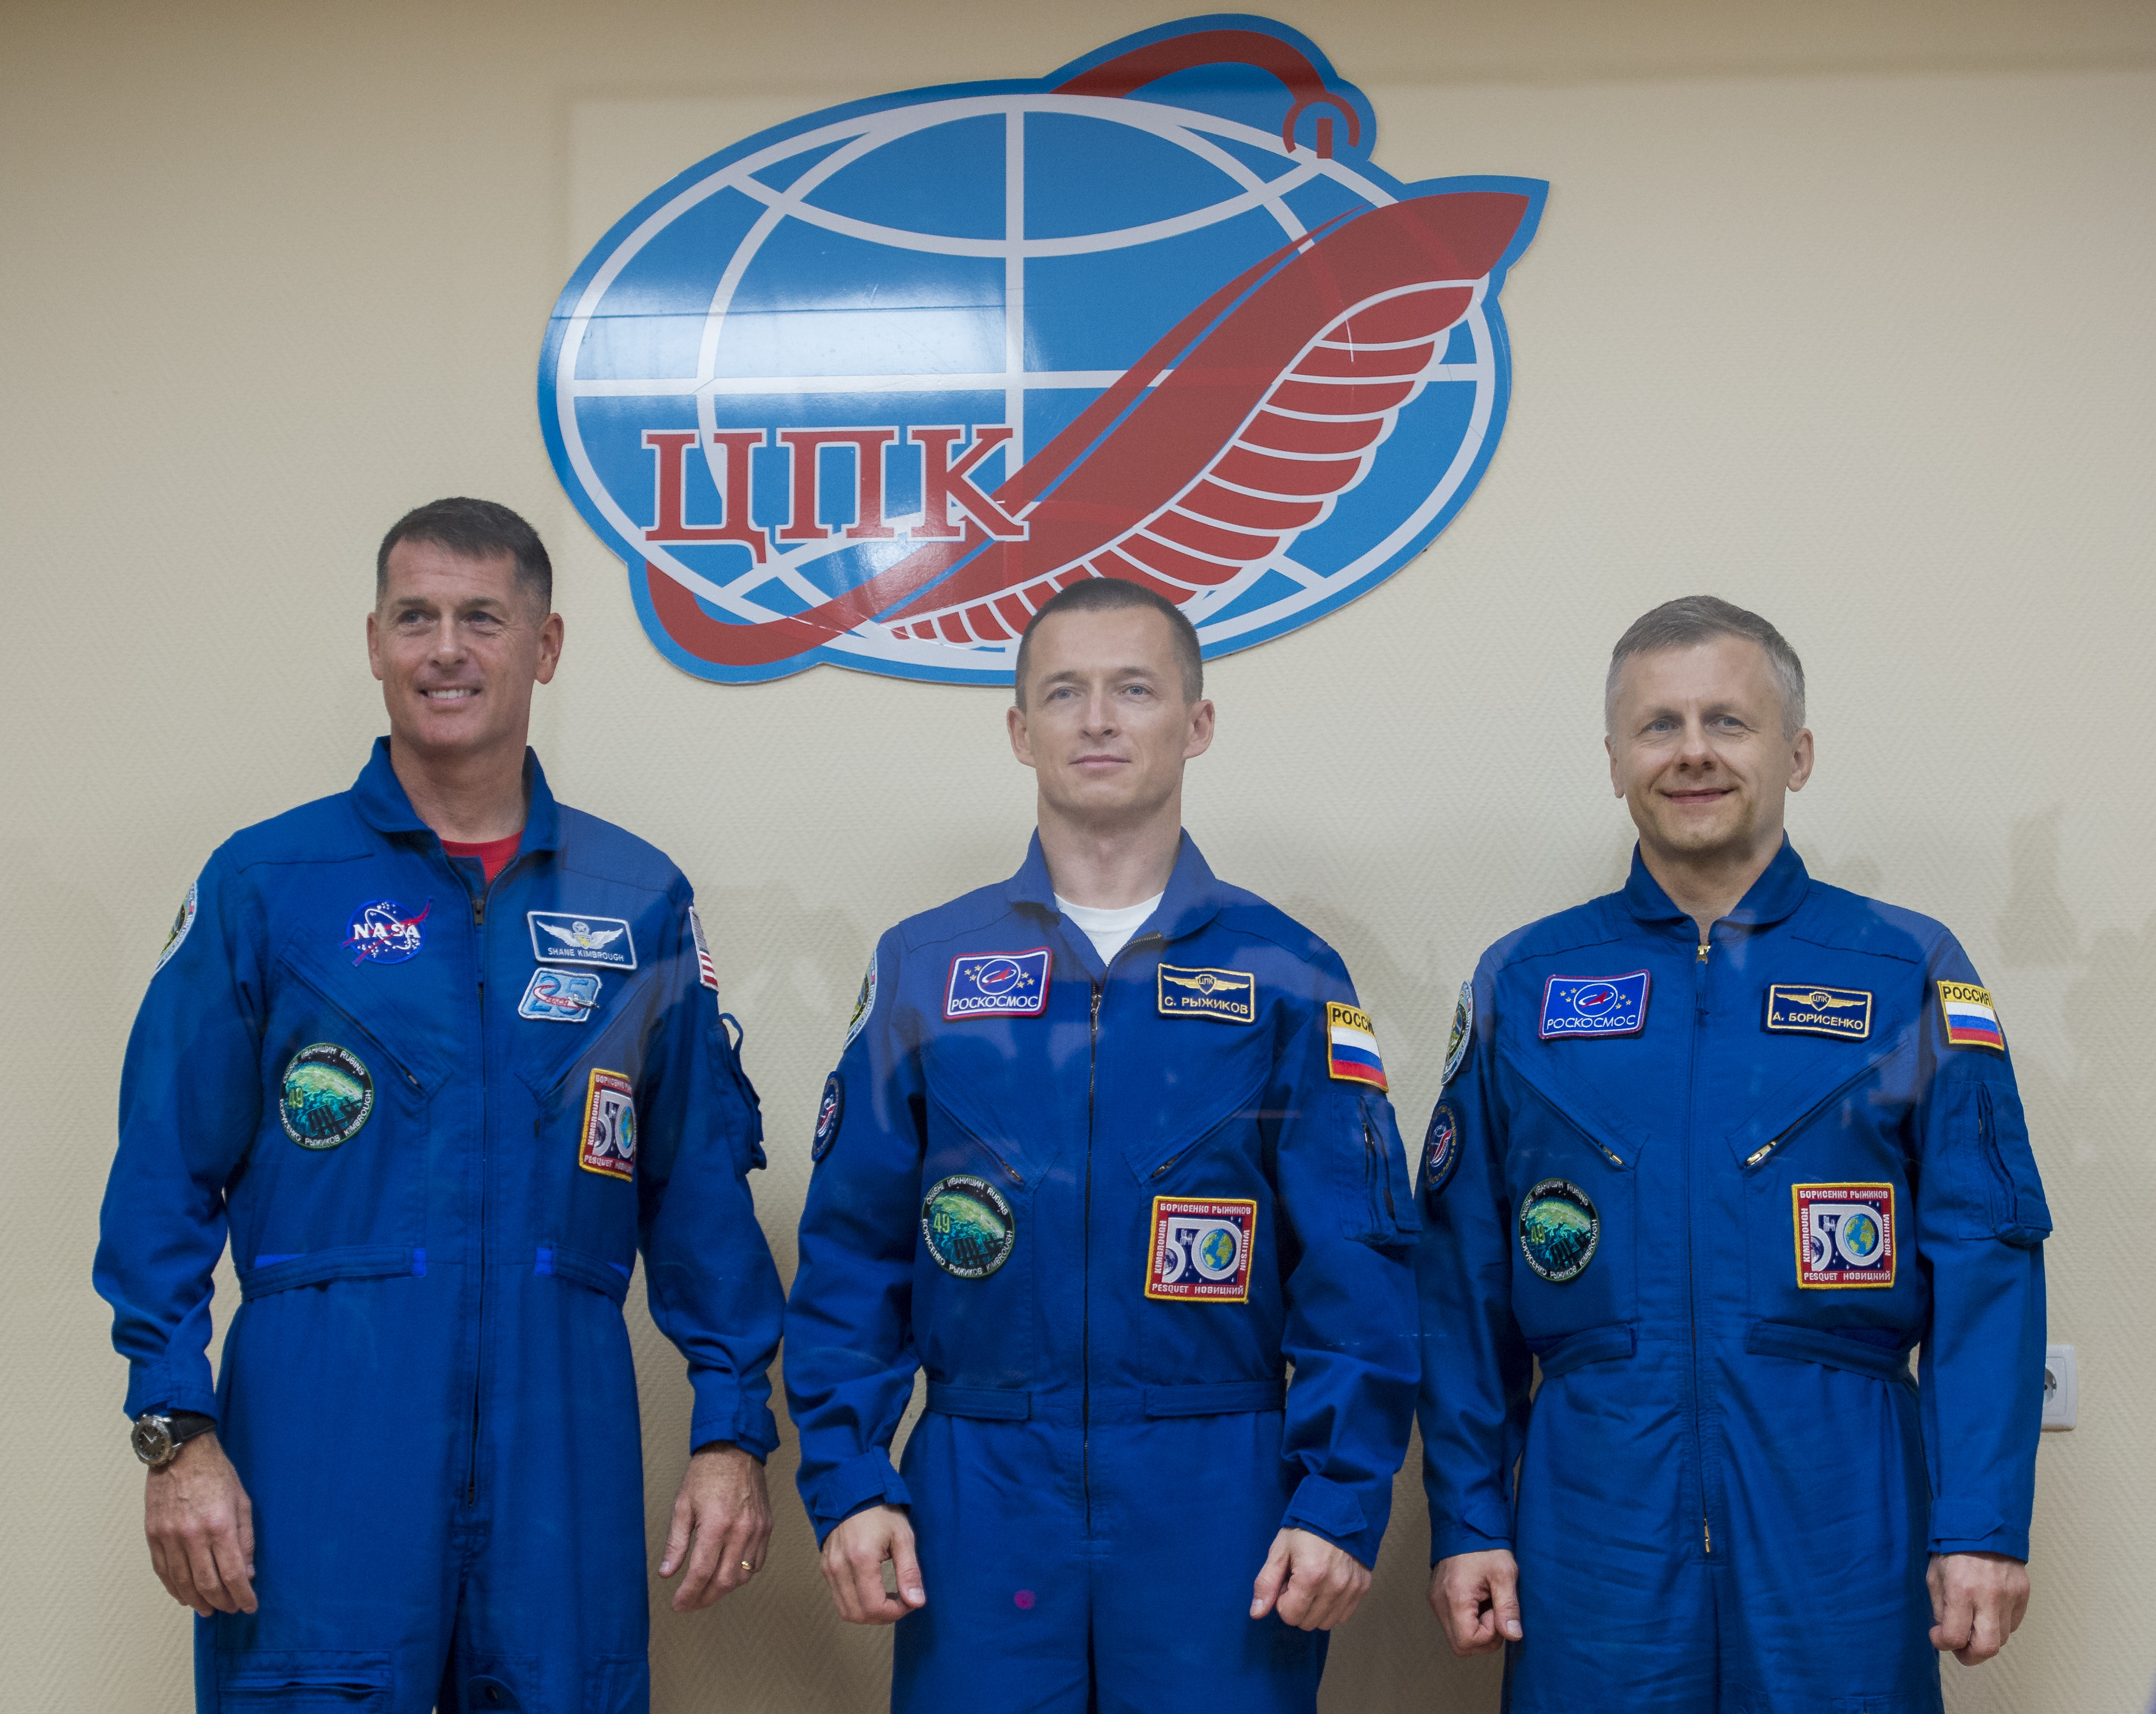 BAIKNOR, KAZAKHSTAN - OCTOBER 18: (L-R) Expedition 49 flight engineer Shane Kimbrough of NASA, Soyuz commander Sergey Ryzhikov of Roscosmos, and flight engineer Andrey Borisenko of Roscosmos, pose for a picture at the conclusion of a crew press conference at the Cosmonaut Hotel on October 18, 2016  in Baikonur, Kazakhstan.  Kimbrough, Ryzhikov, and Borisenko are scheduled to launch to the International Space Station aboard the Soyuz MS-02 spacecraft from the Baikonur Cosmodrome on October 19.  (Photo by NASA/Joel Kowsky via Getty Images)